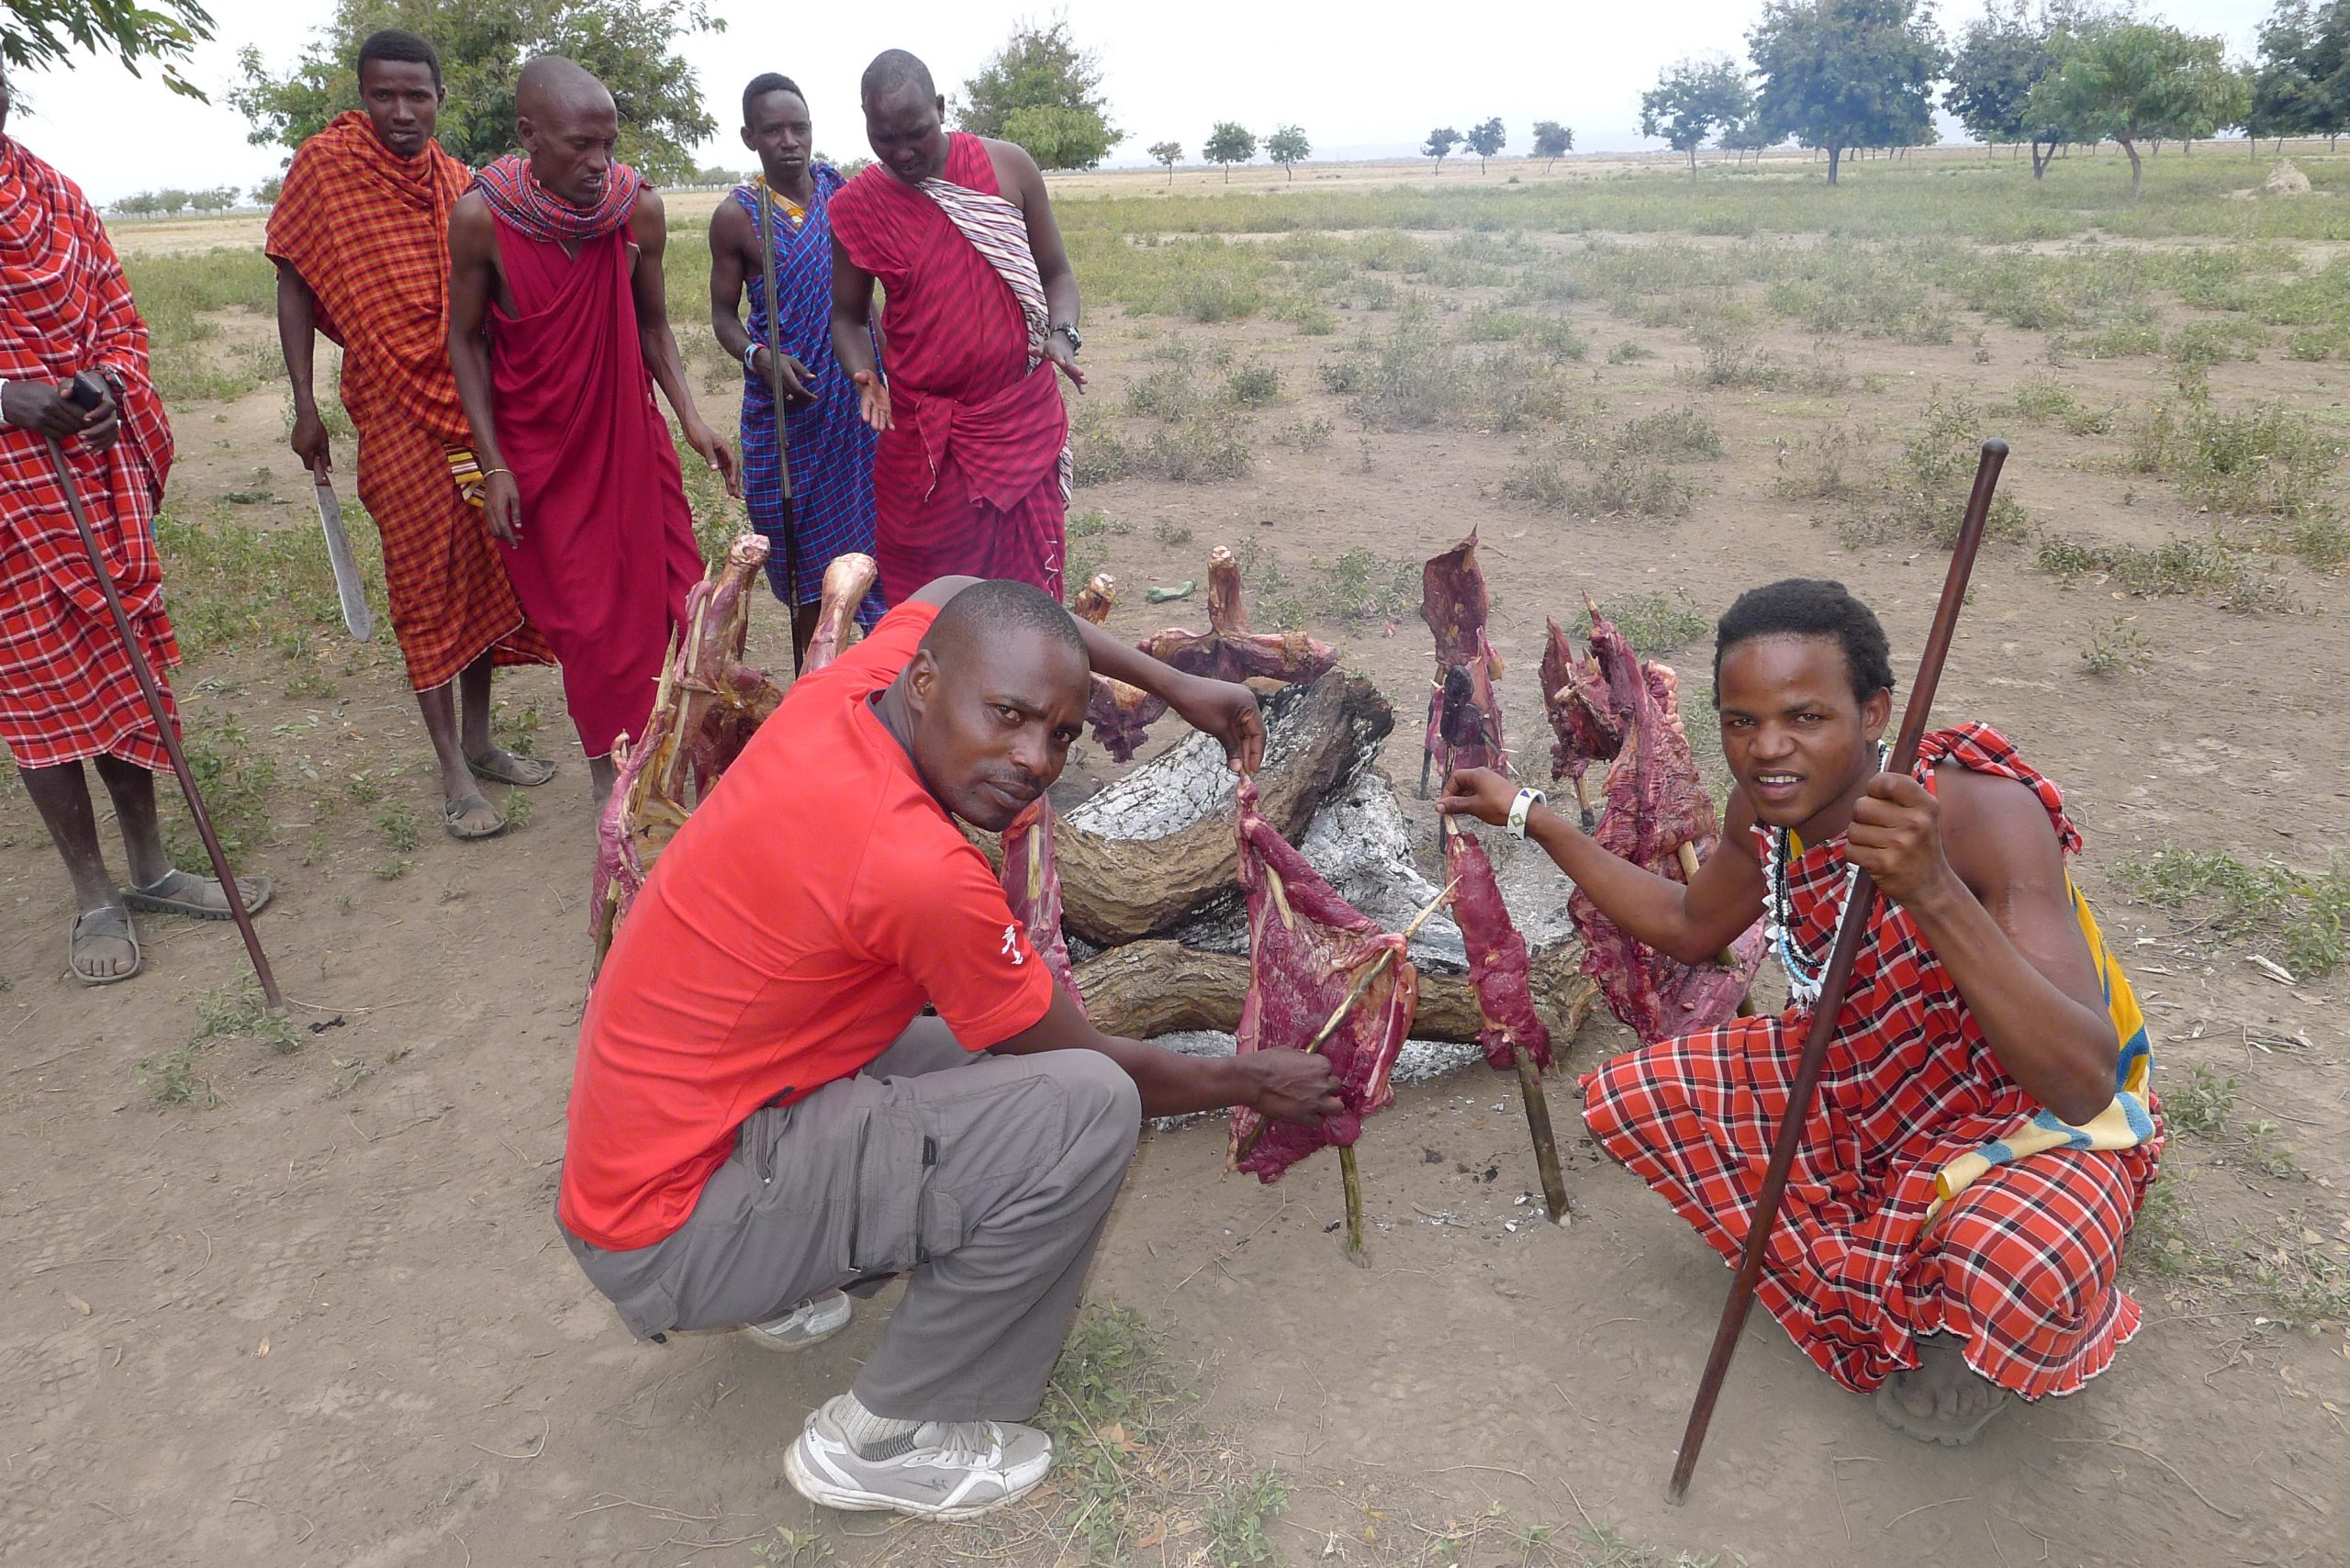 Making barbeque with the Maasai